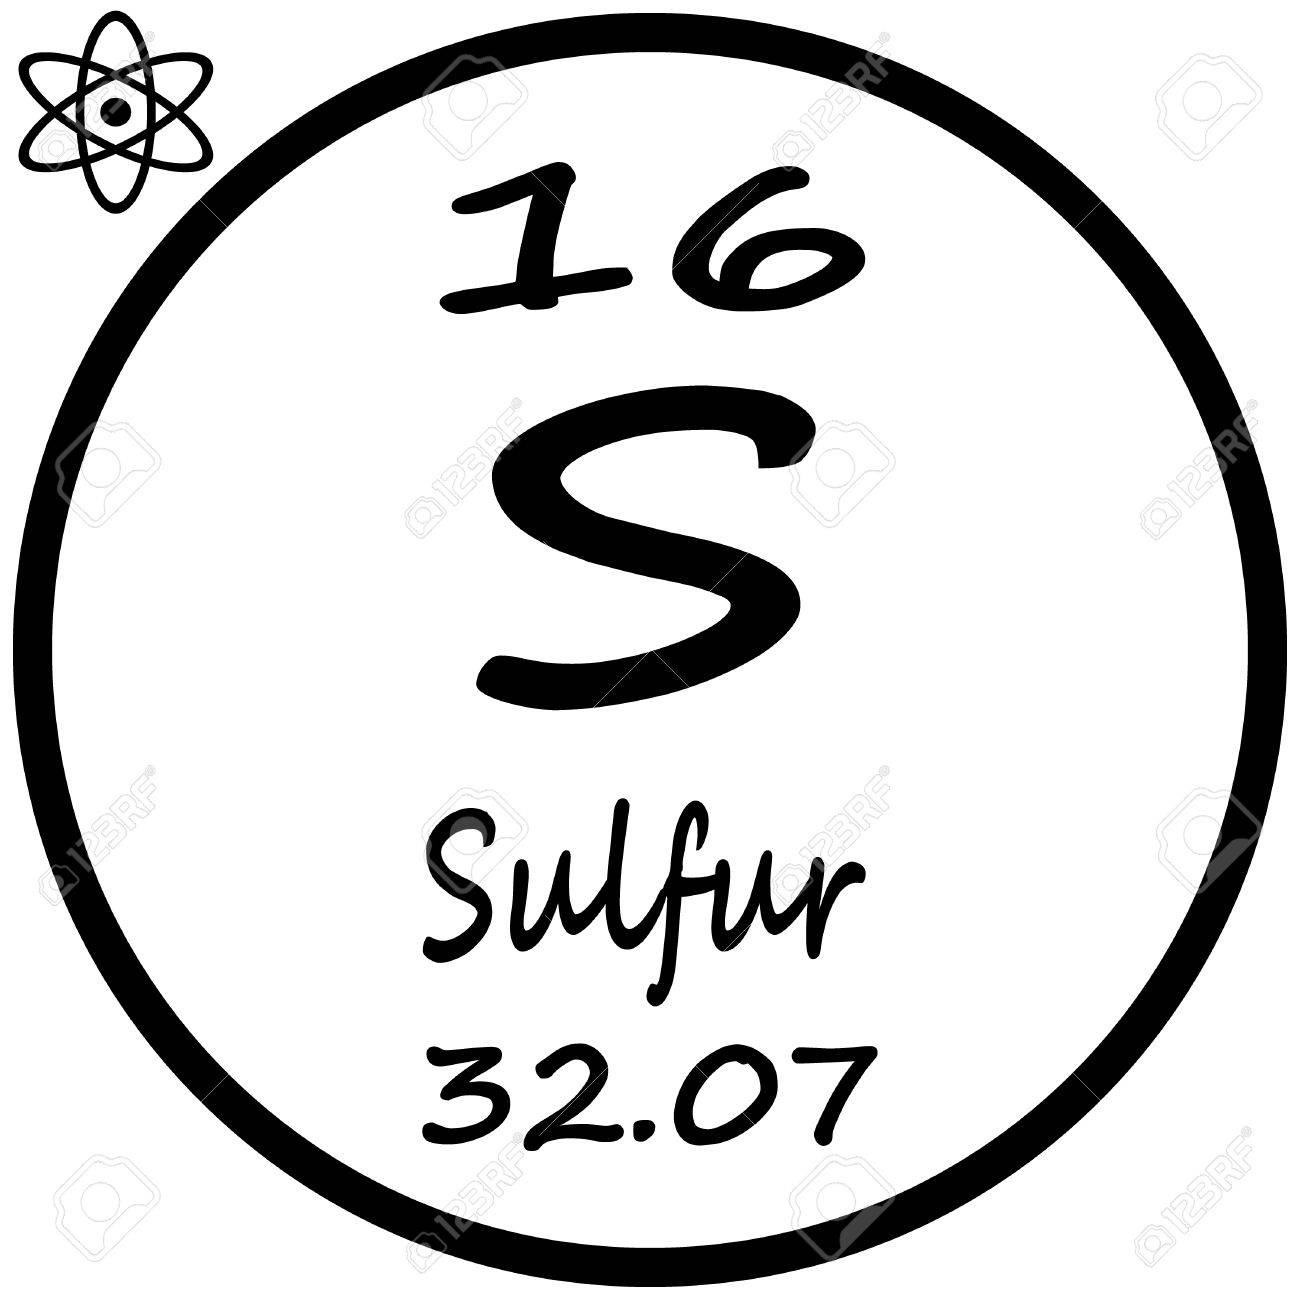 Periodic table of elements sulfur royalty free cliparts vectors periodic table of elements sulfur stock vector 53482433 gamestrikefo Image collections